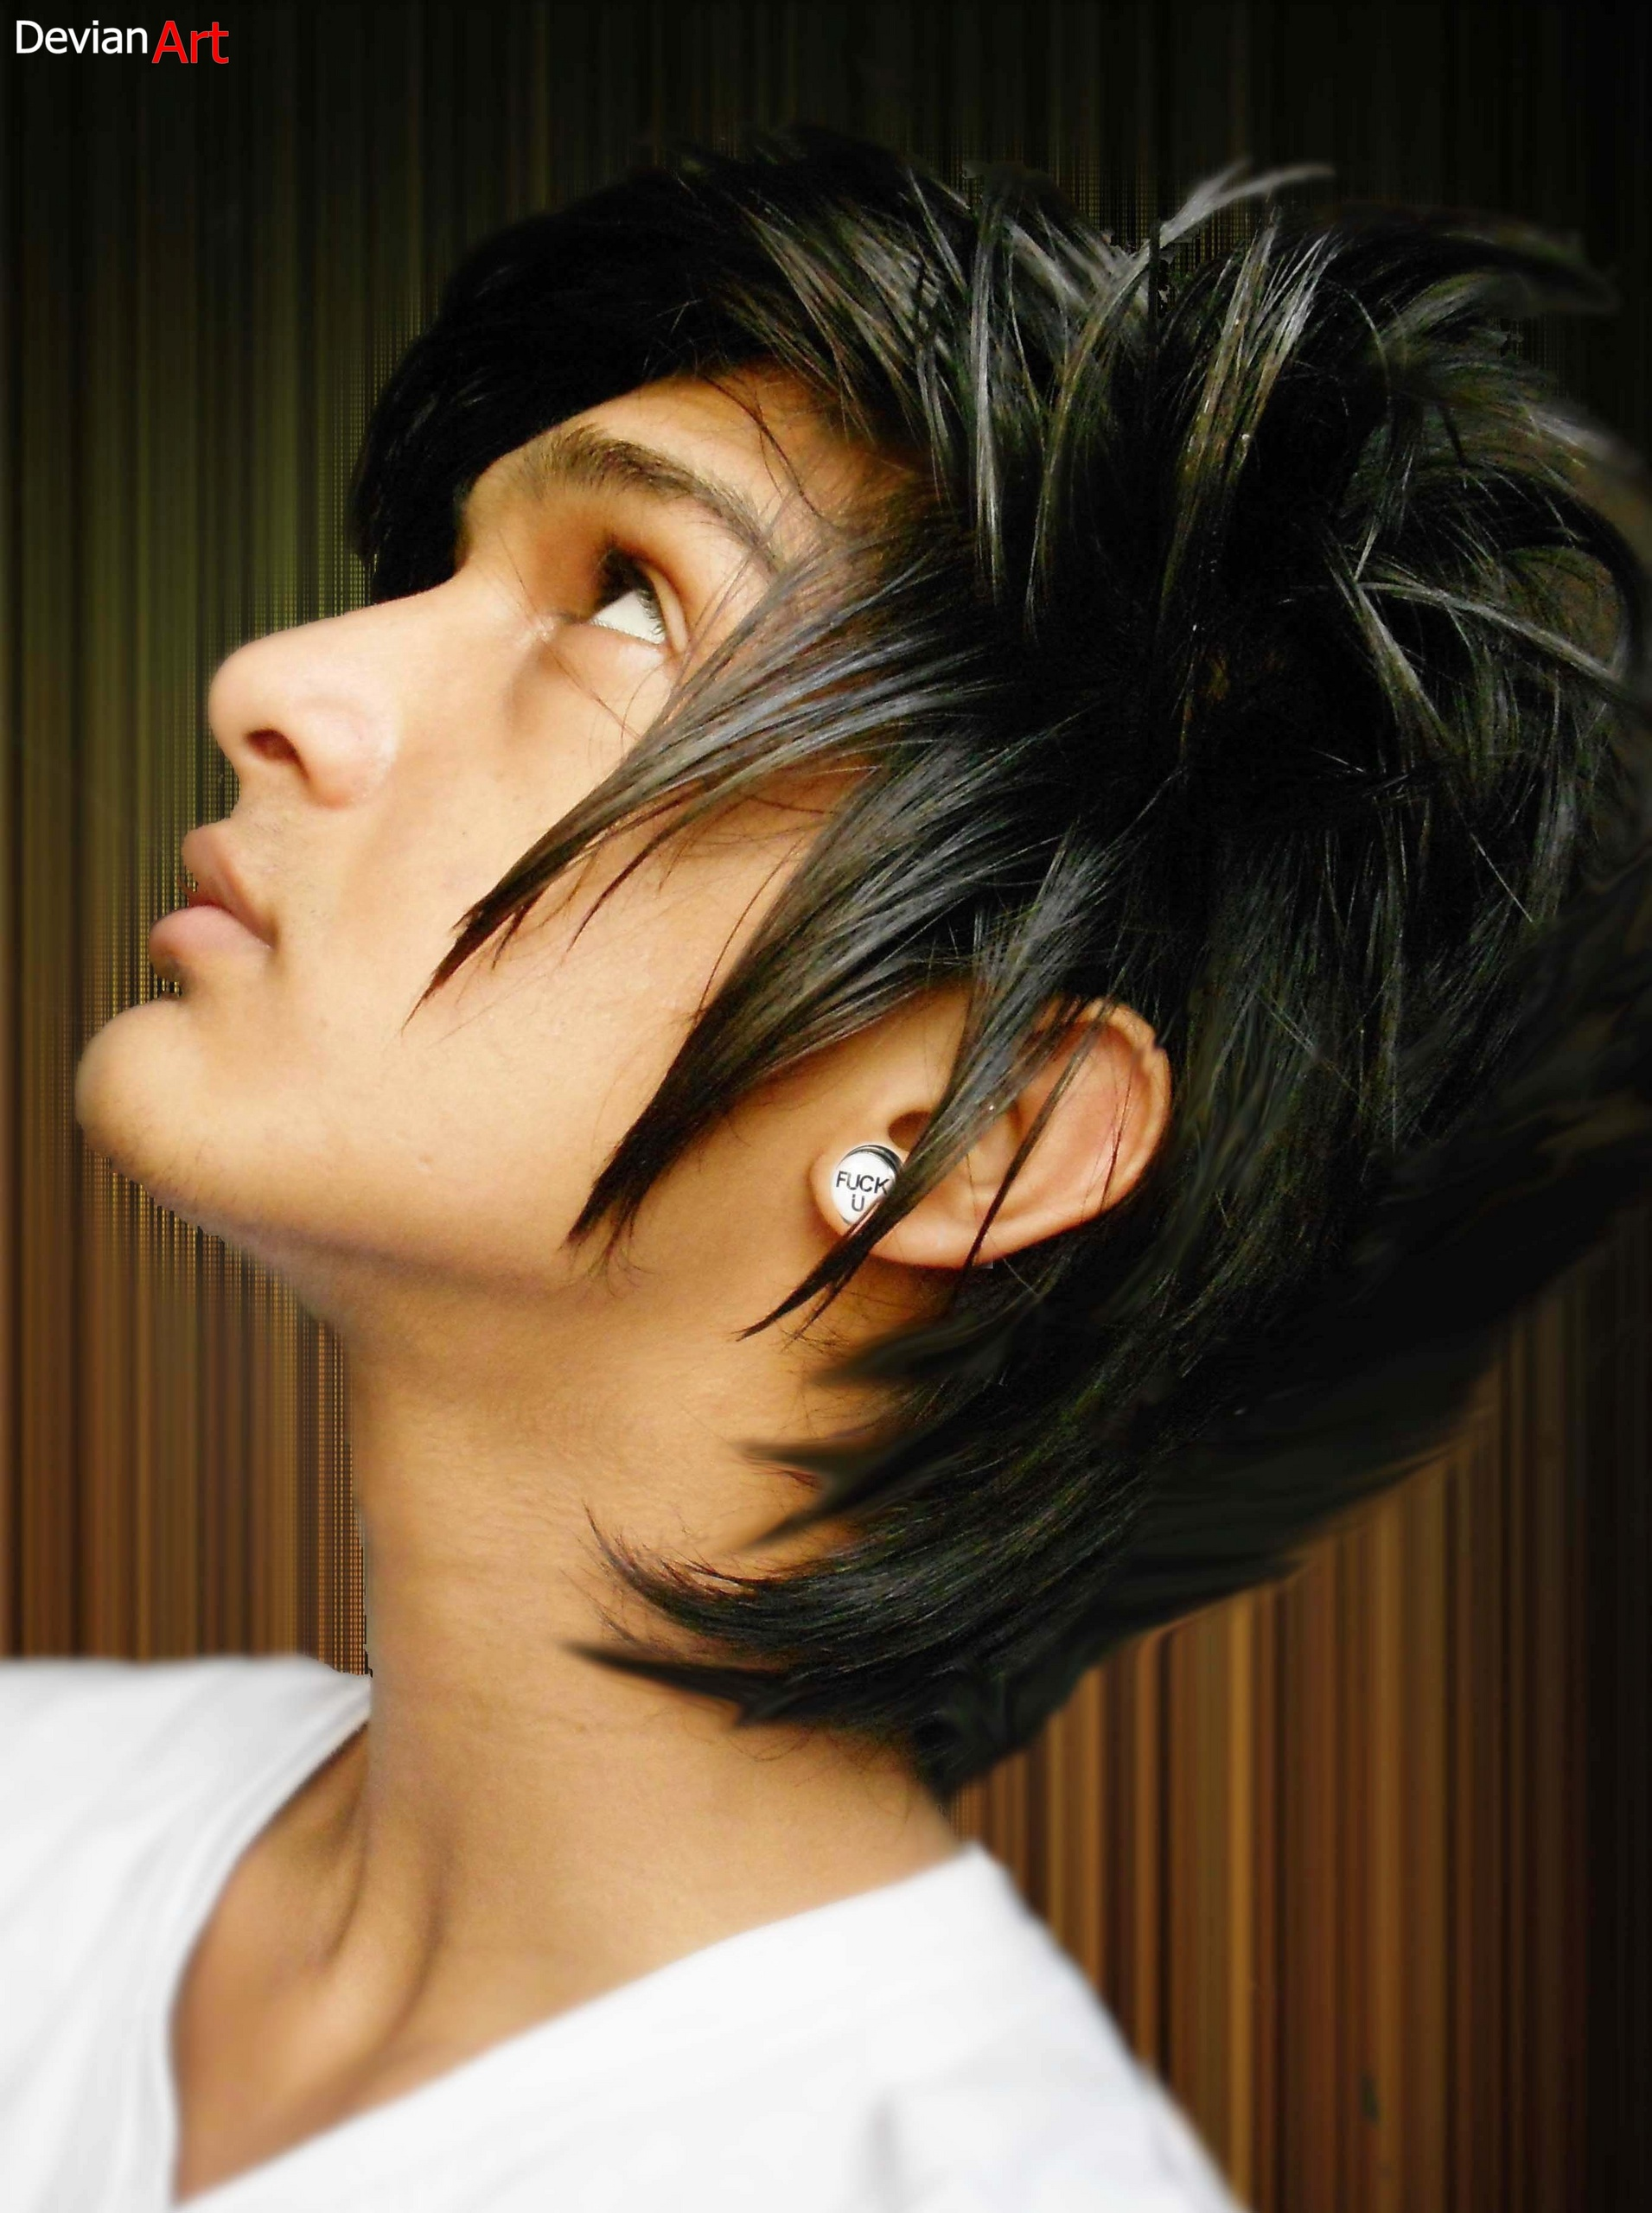 Emo Boys Images Syed Sultan Devian Art Hd Wallpaper And